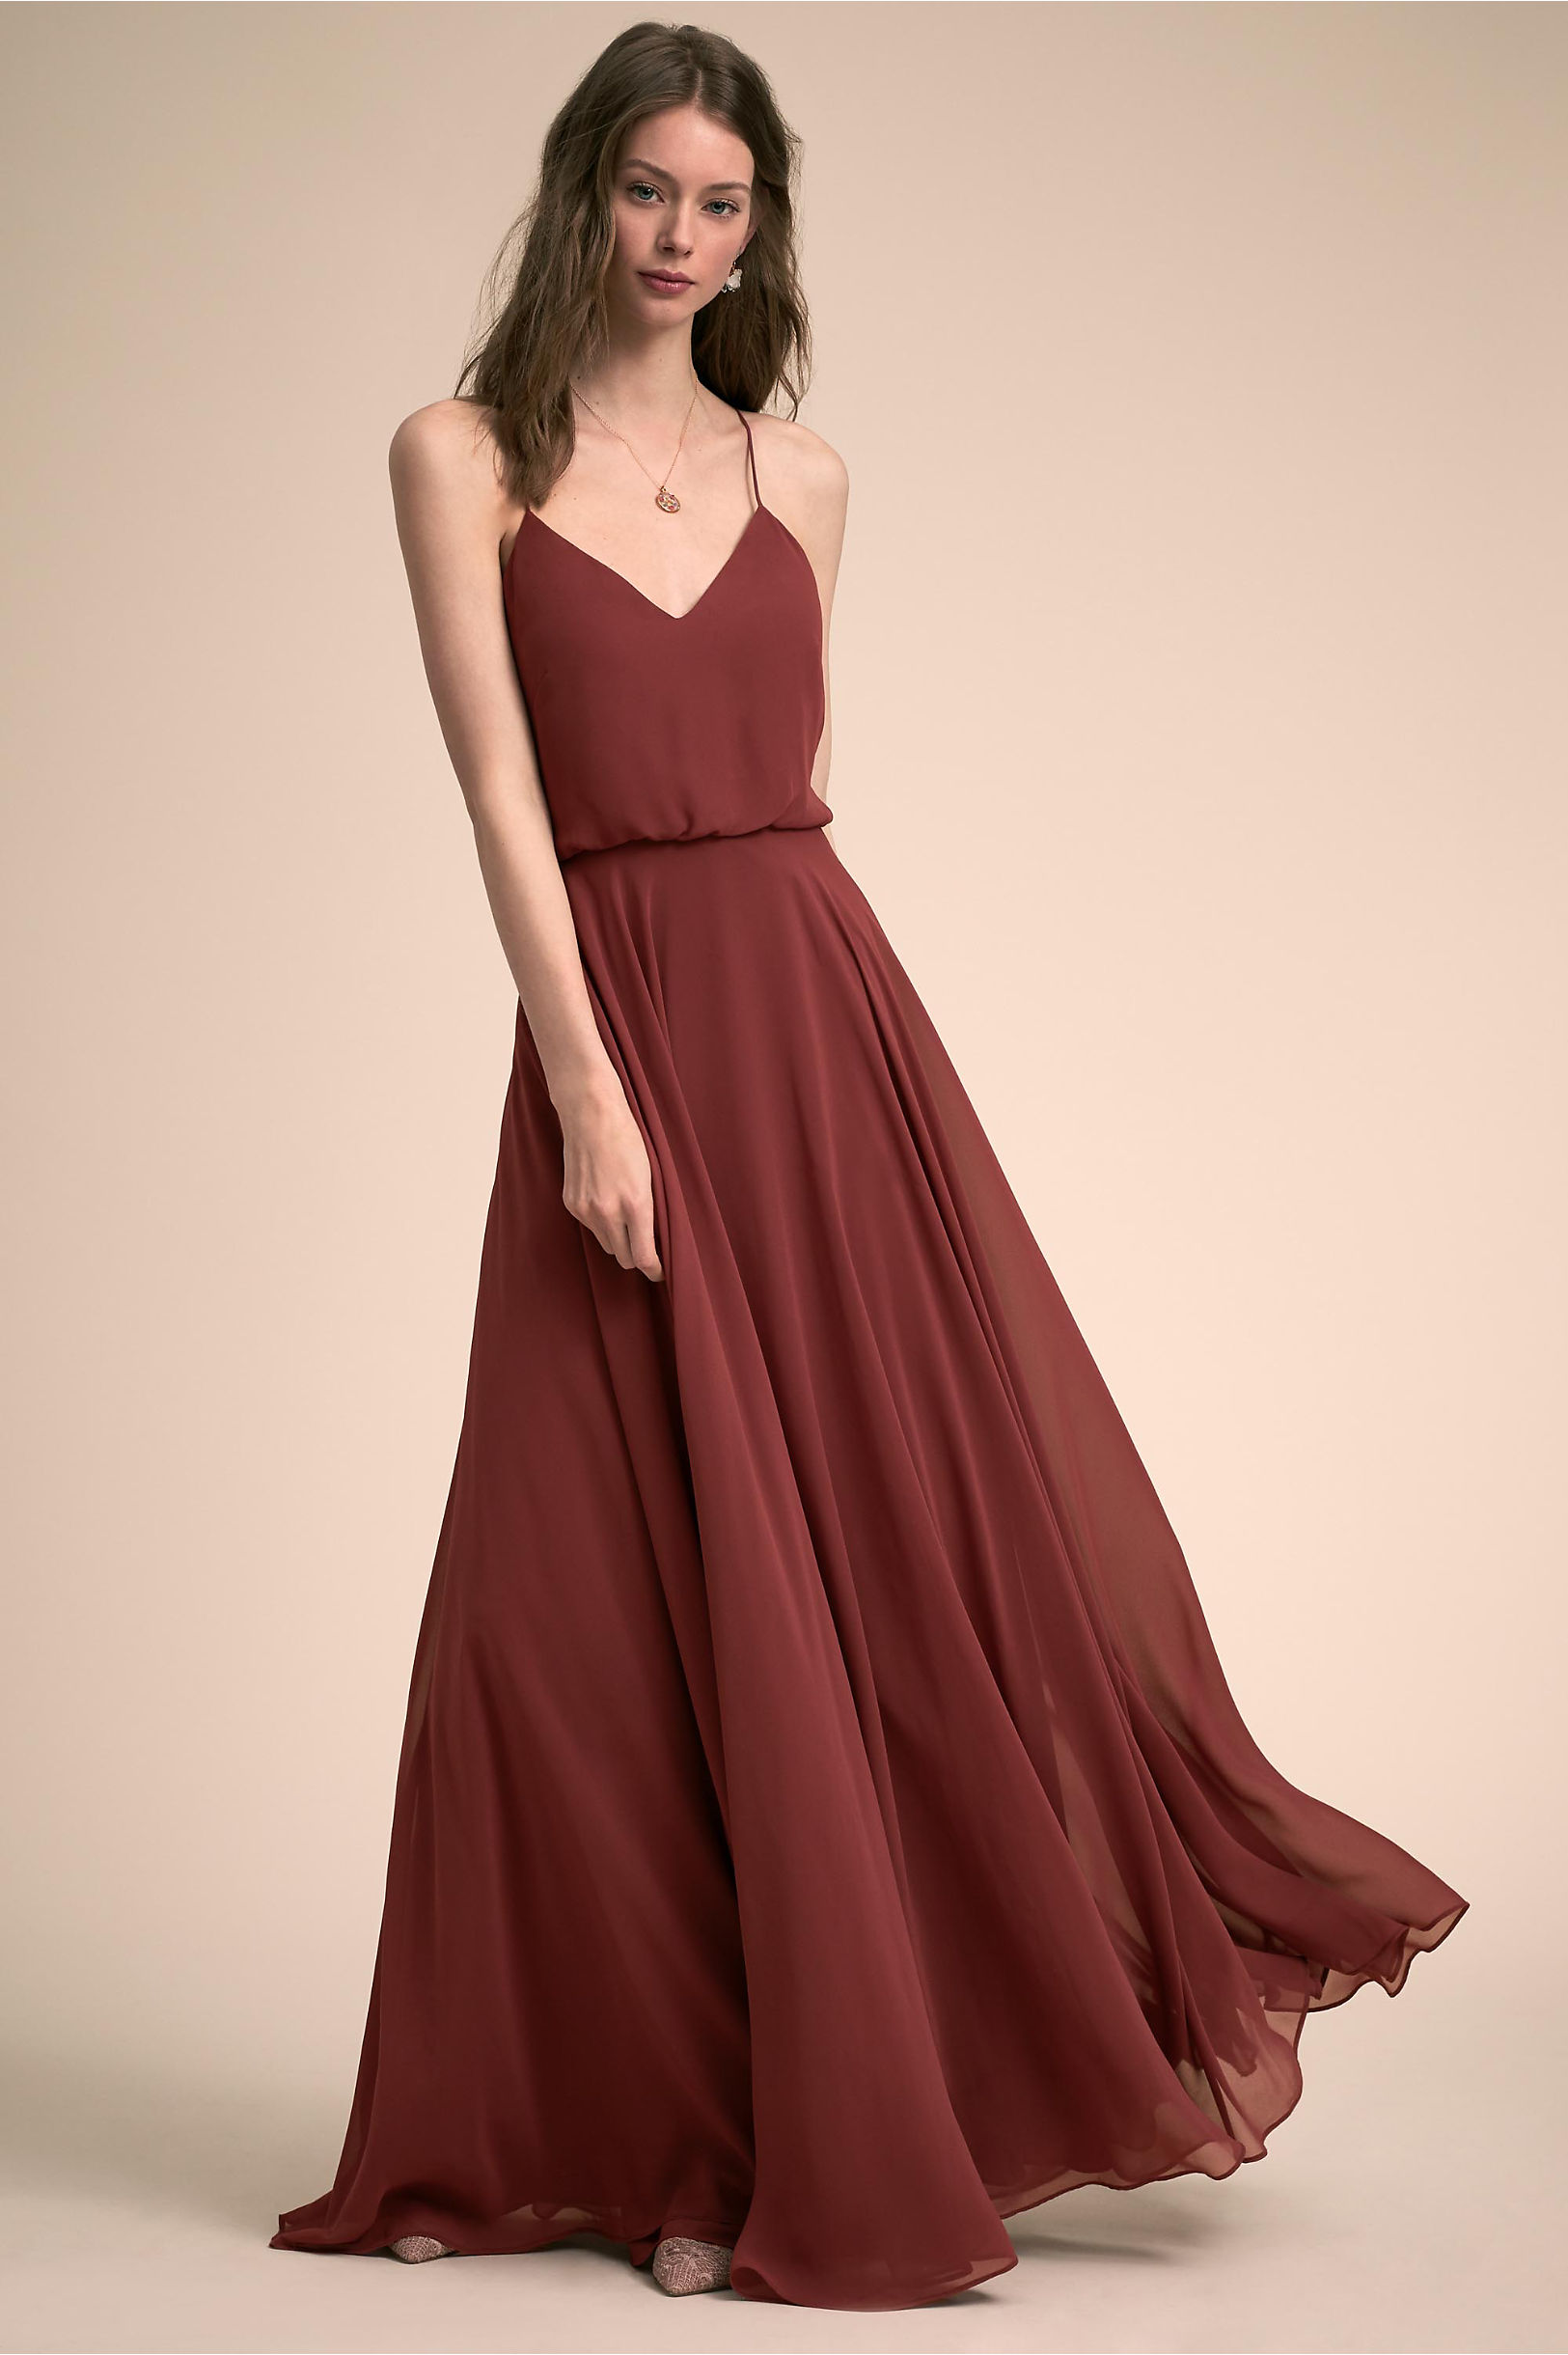 Inesse dress cinnamon rose in bridal party bhldn cinnamon rose inesse dress bhldn ombrellifo Images